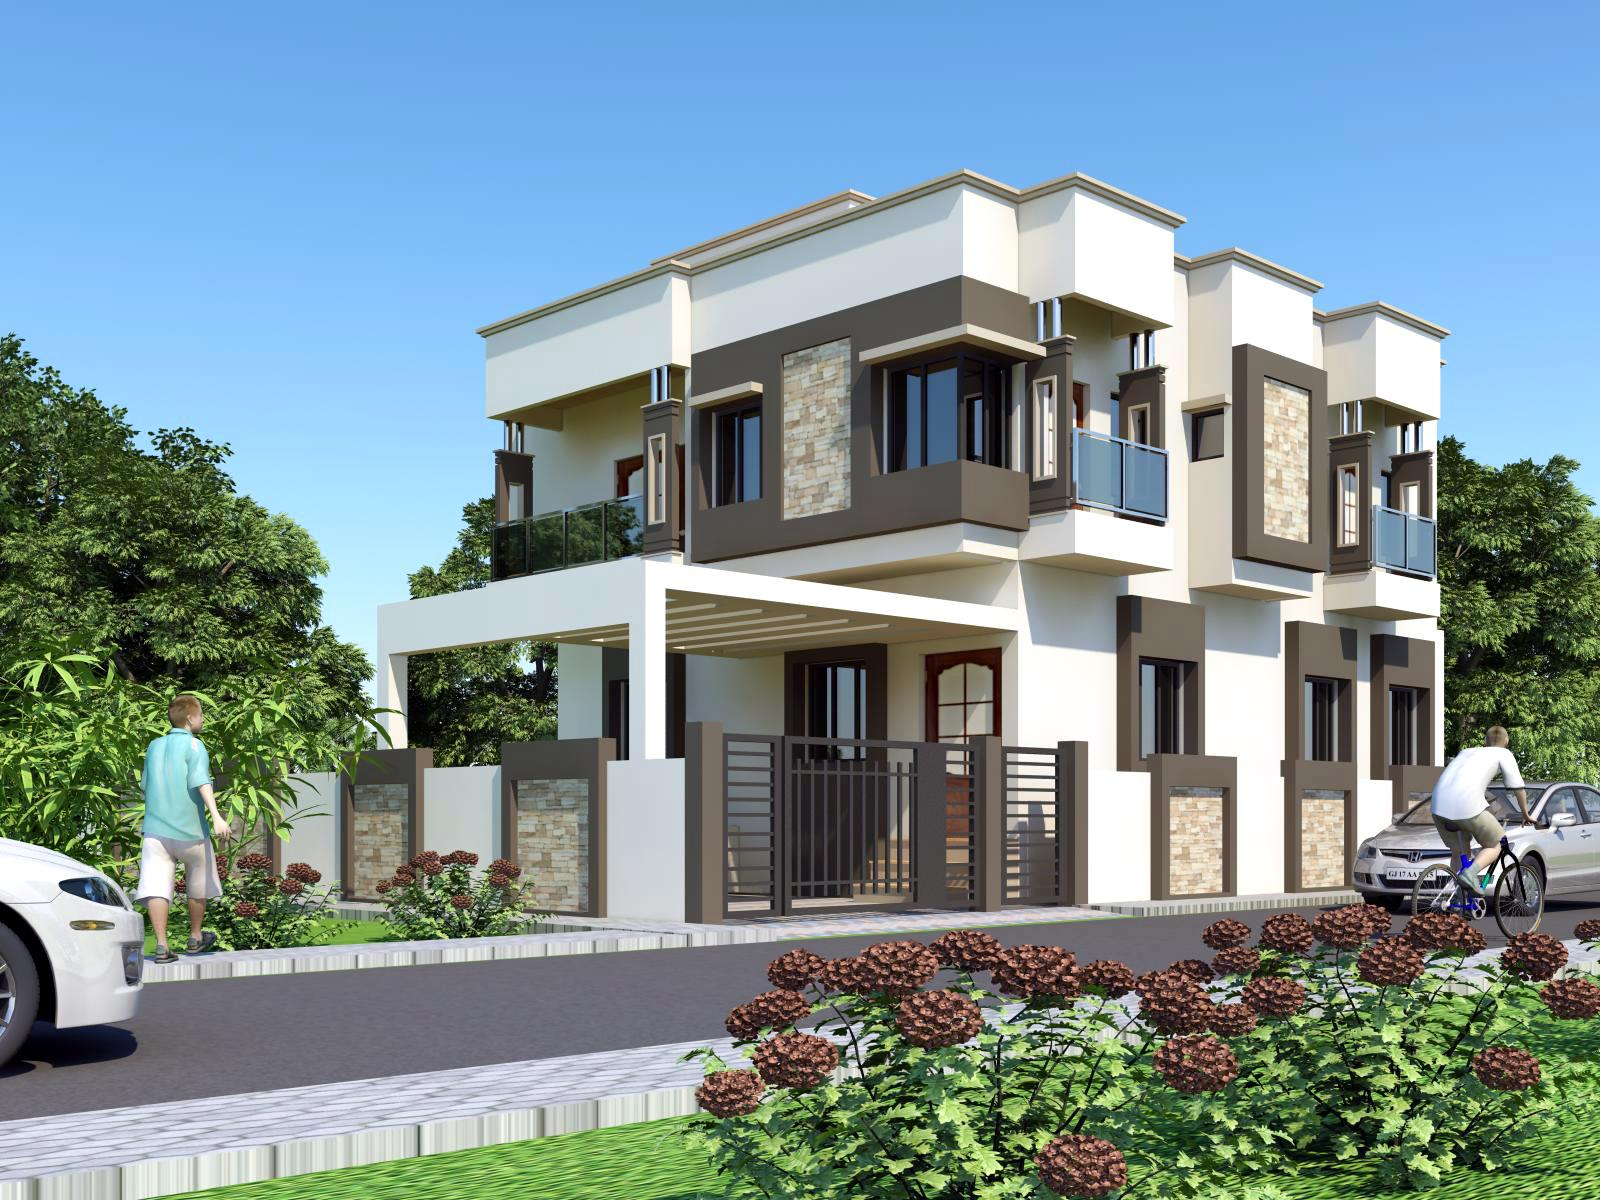 Front Elevation Of The Houses : Wall papers india pakistan house design d front elevation